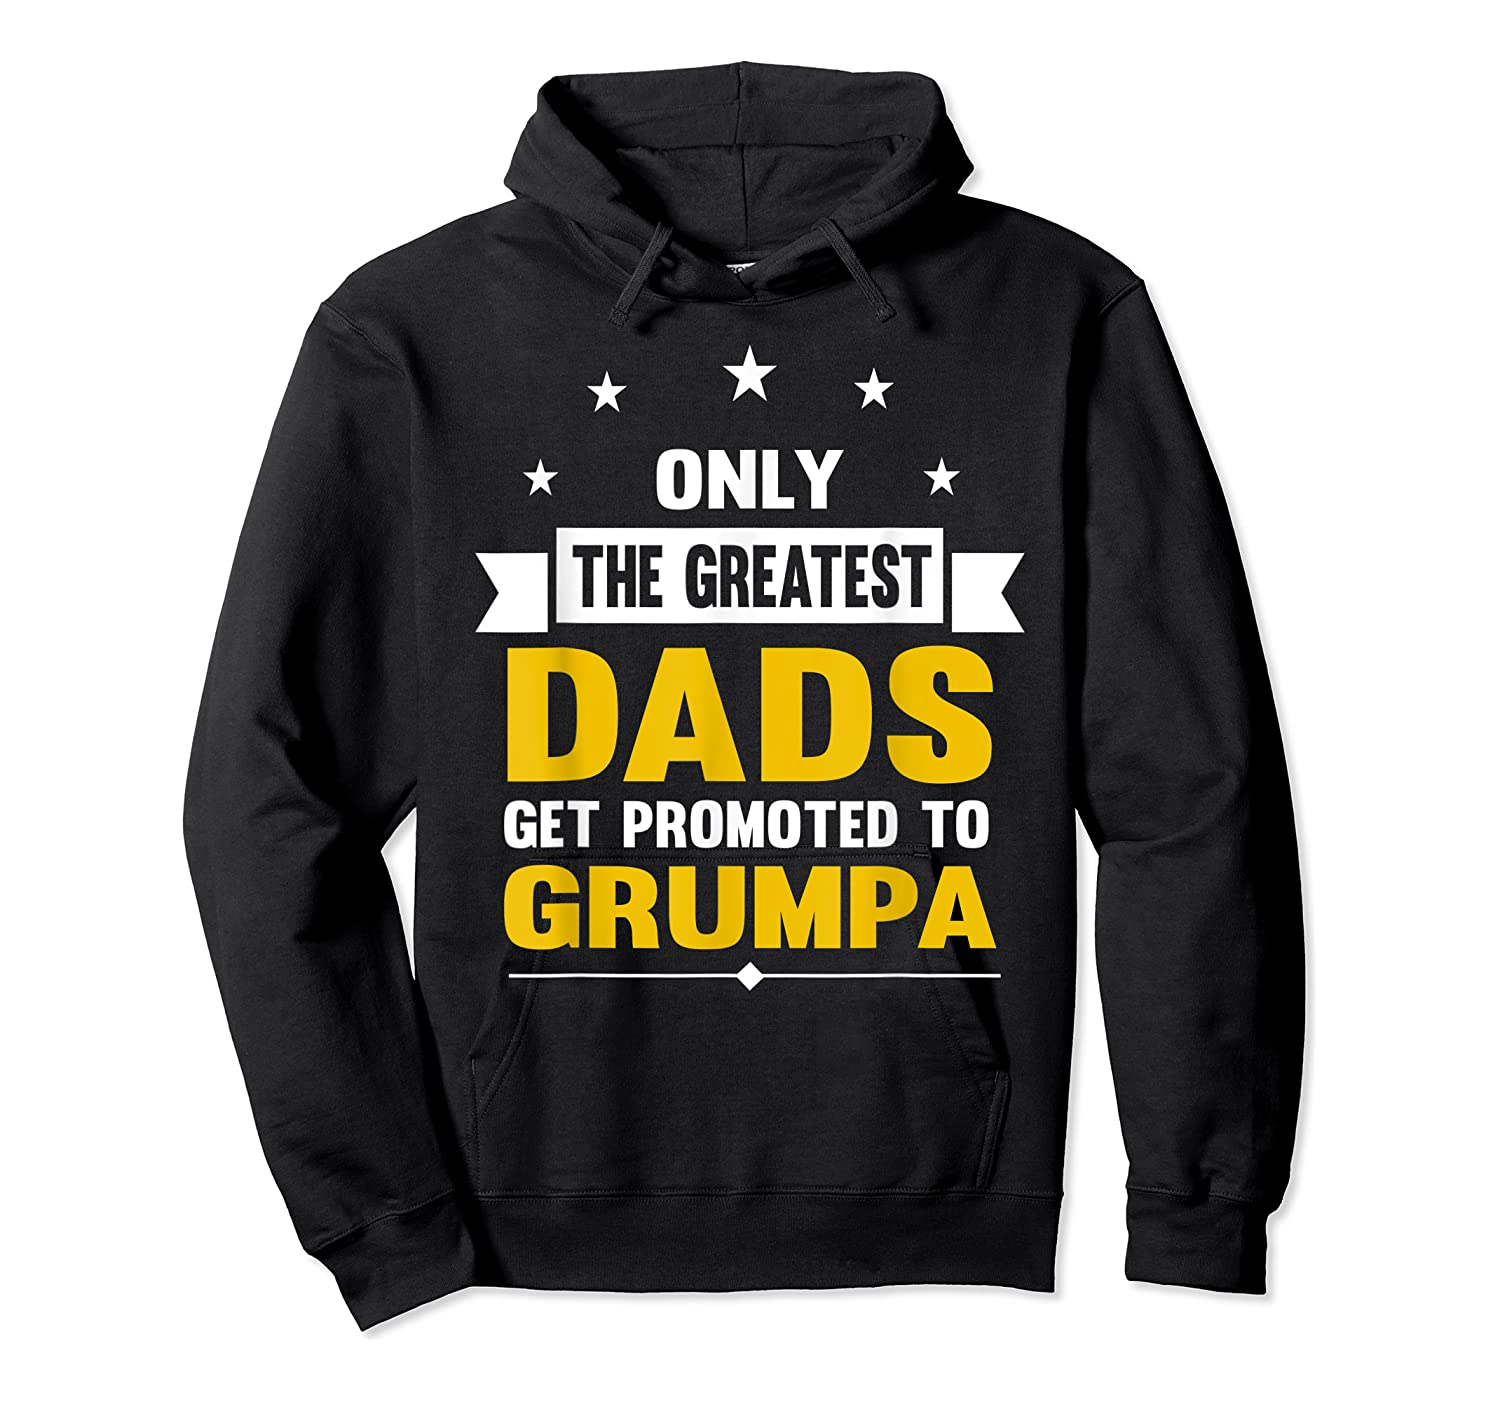 Family 365 The Greatest Dads Get Promoted To Grumpa Grandpa T-shirt Unisex Pullover Hoodie